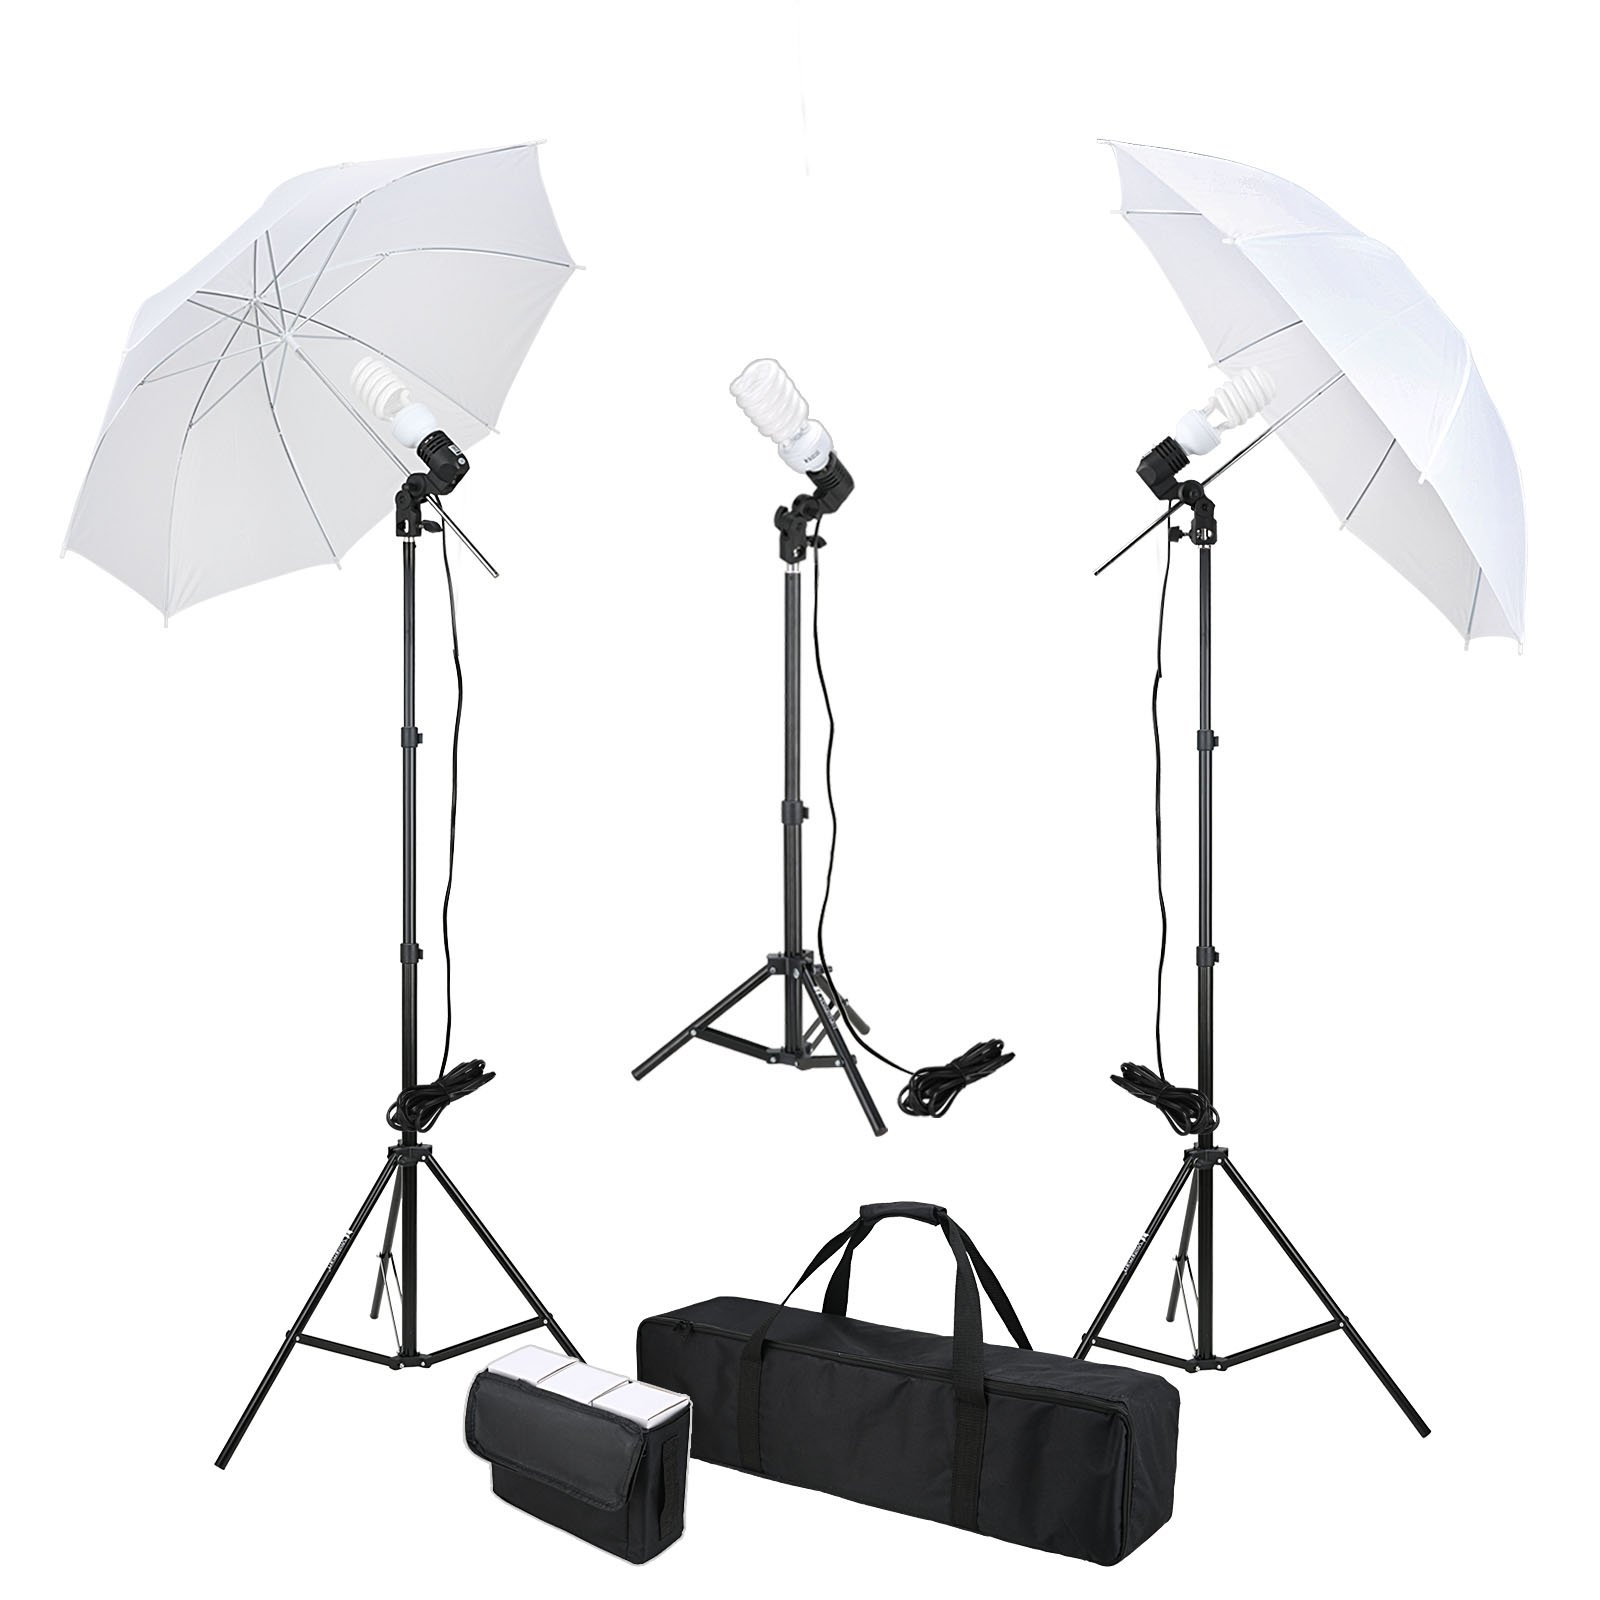 Nice studio lighting kit